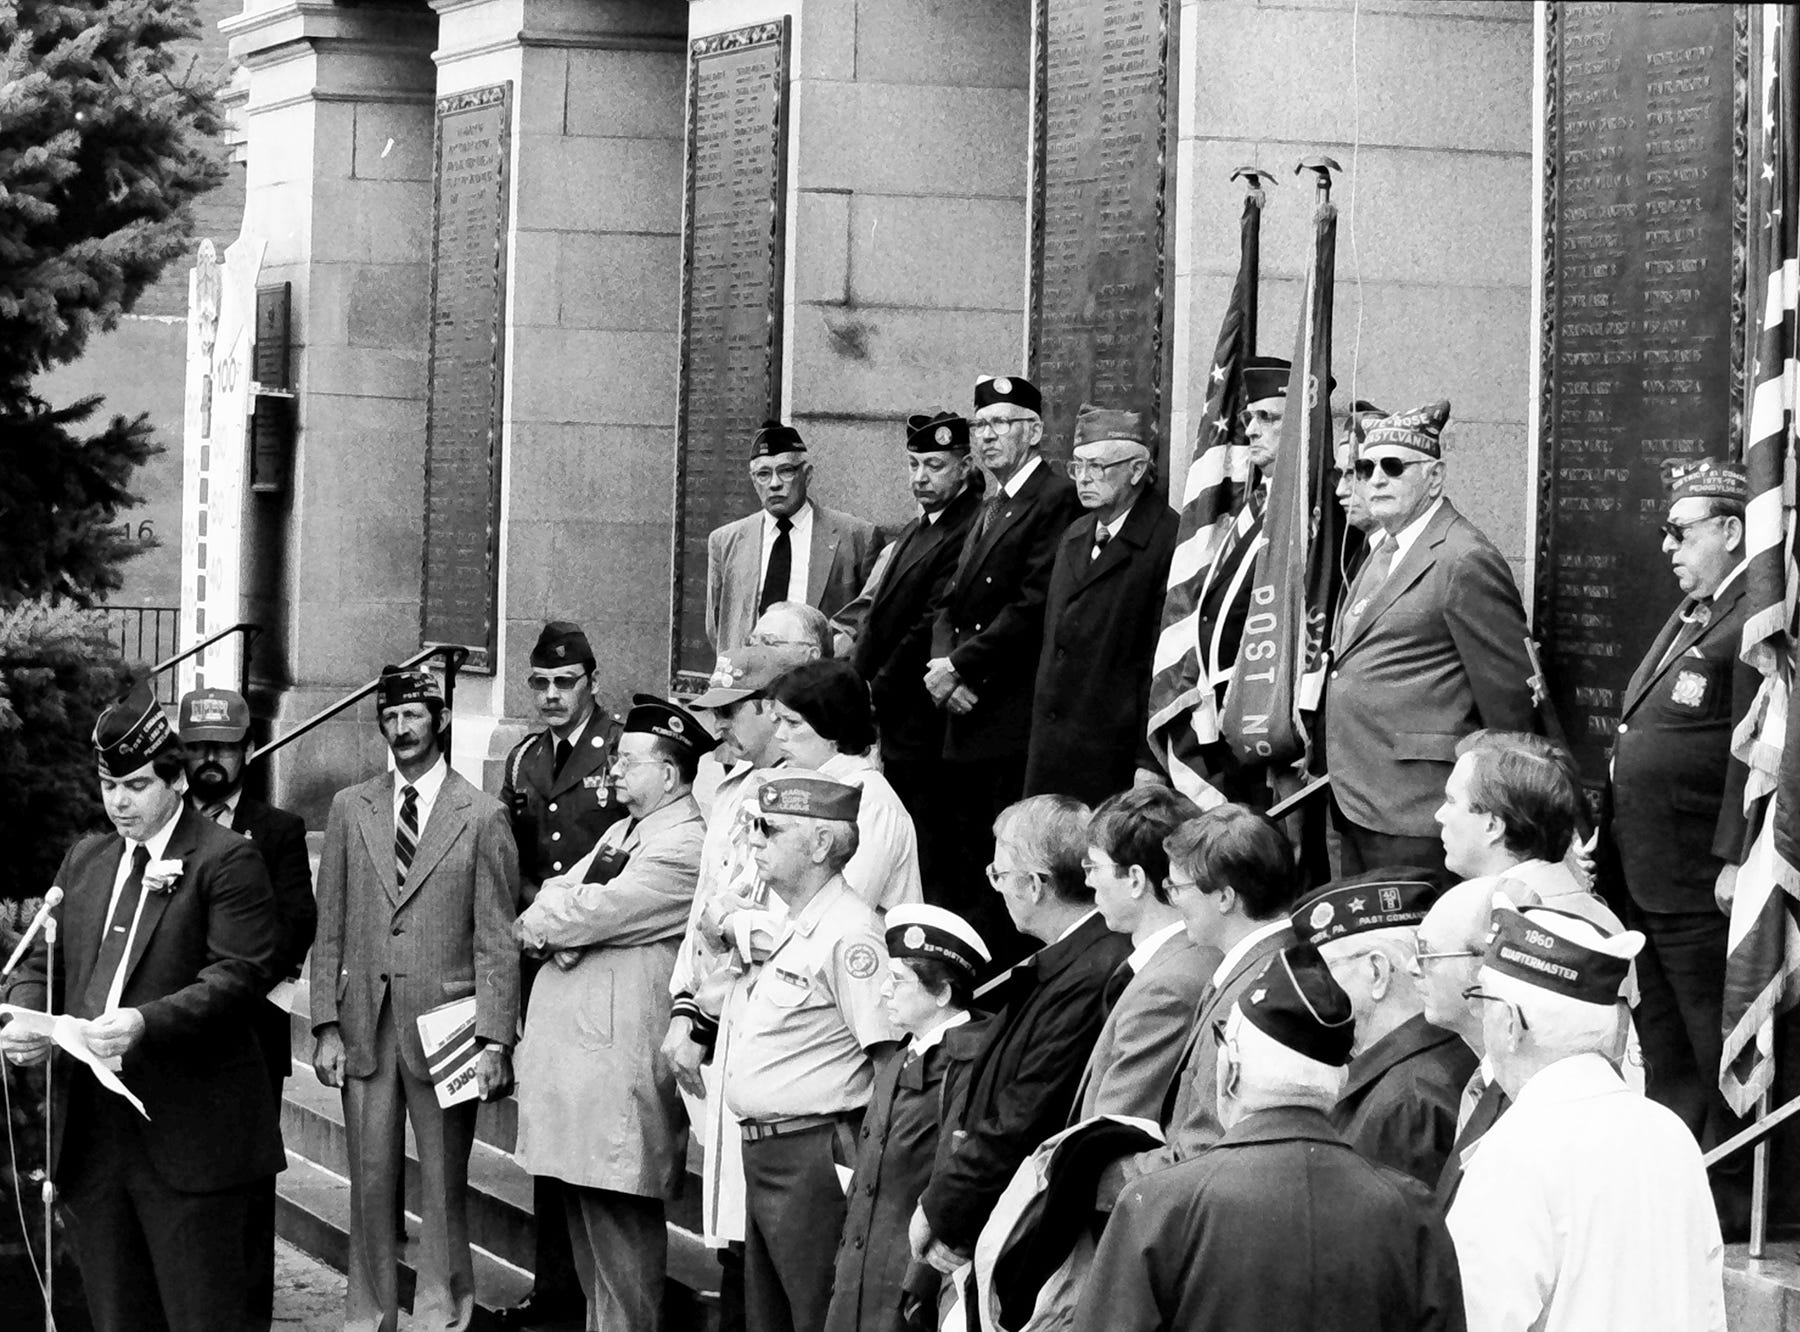 In 1985, a veterans group gathered on the steps of the York County Courthouse, which is now the York County Administrative Center.